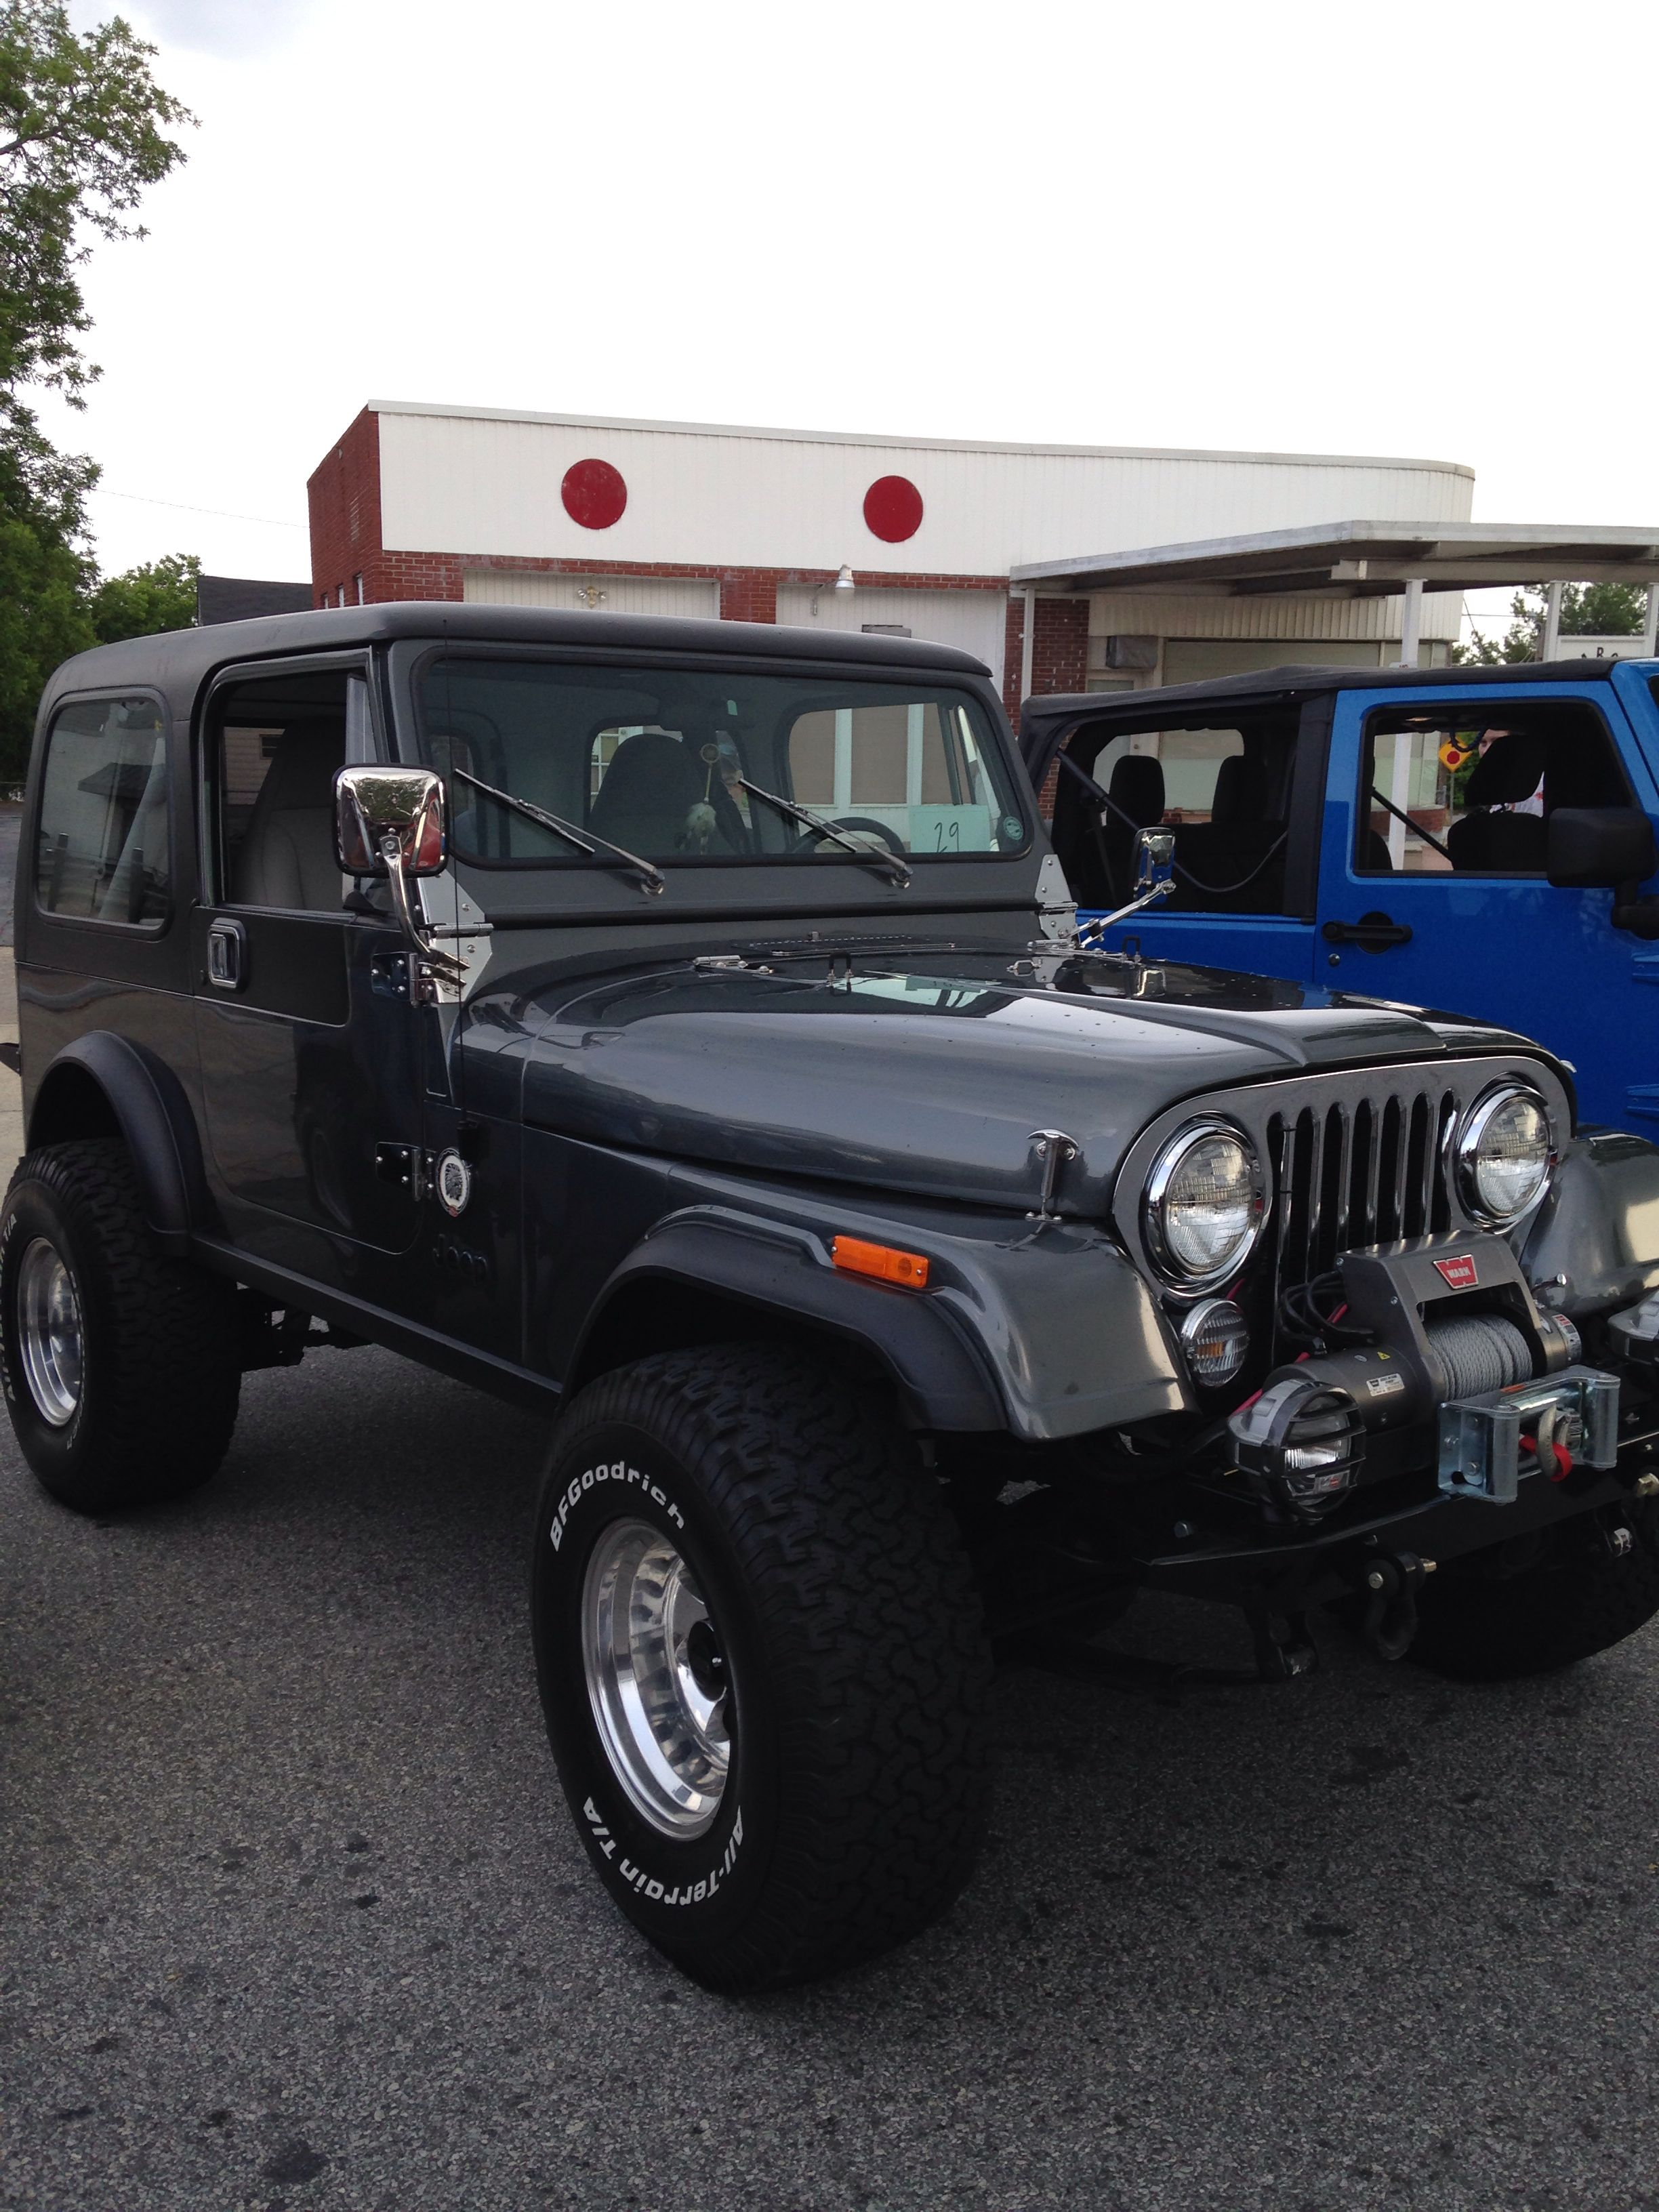 Jeep Cj7 At The Jeep Show Pickens Sc Jeep Cj7 Jeep Jeep Cj